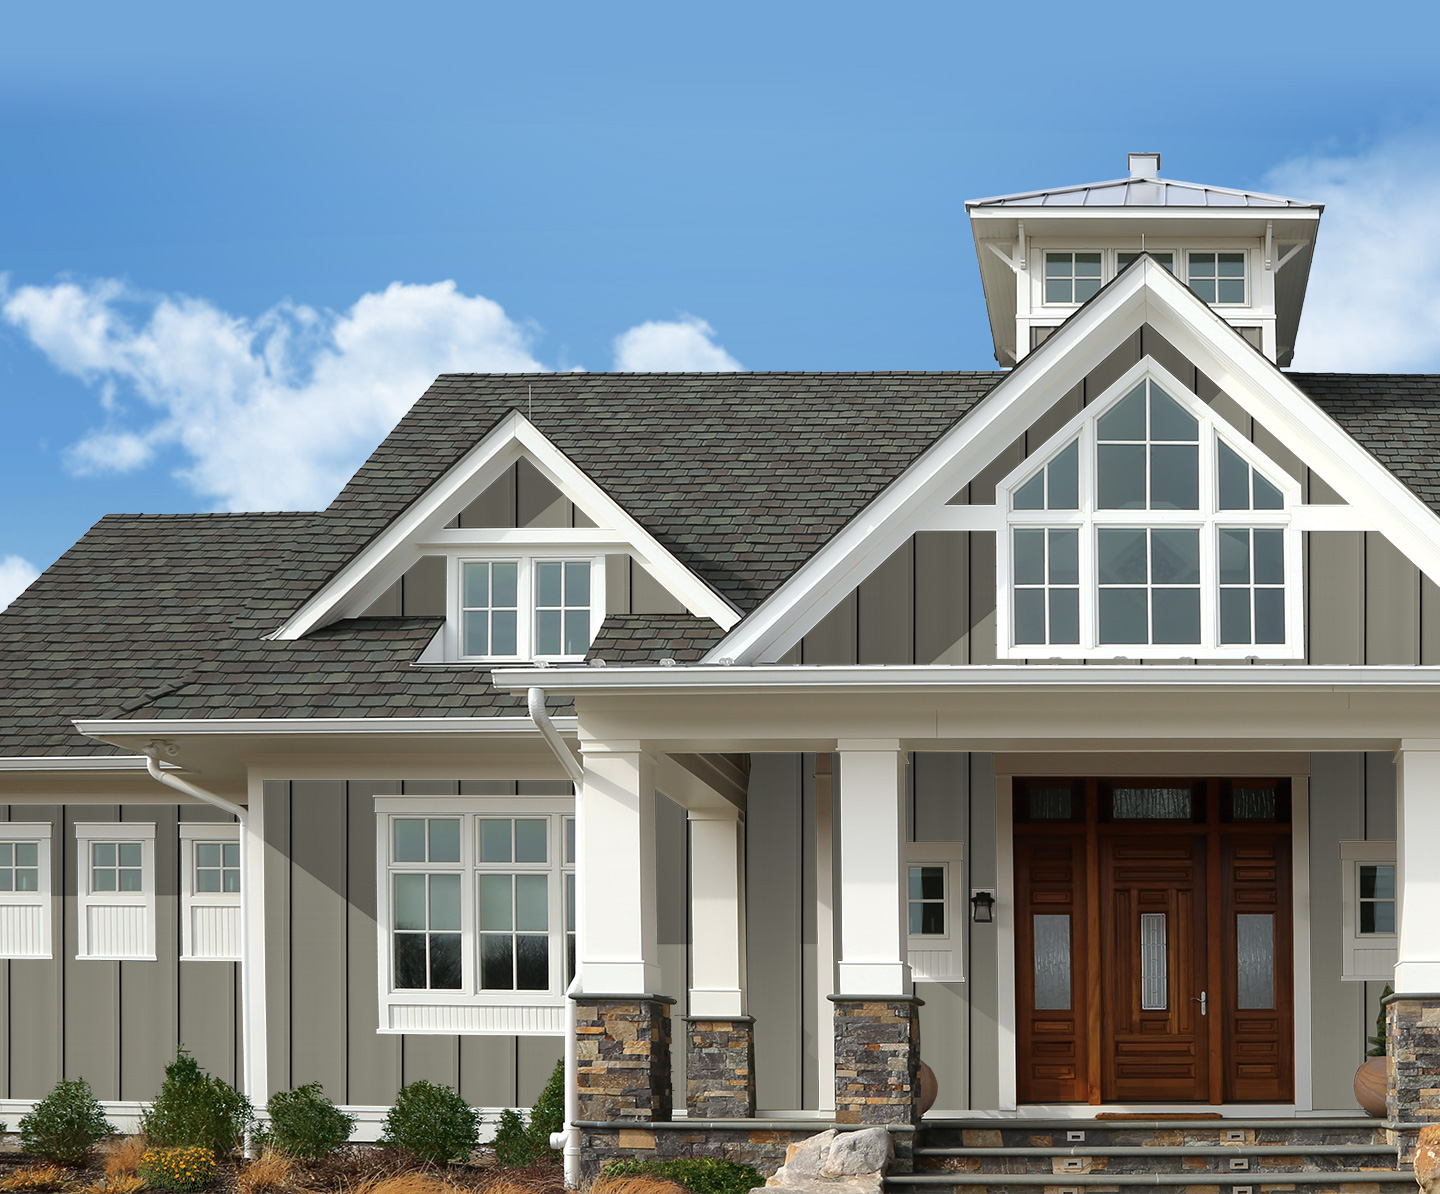 Wondrous Explore The Soaring Curb Appeal Of Vertical Siding Royal Download Free Architecture Designs Xerocsunscenecom